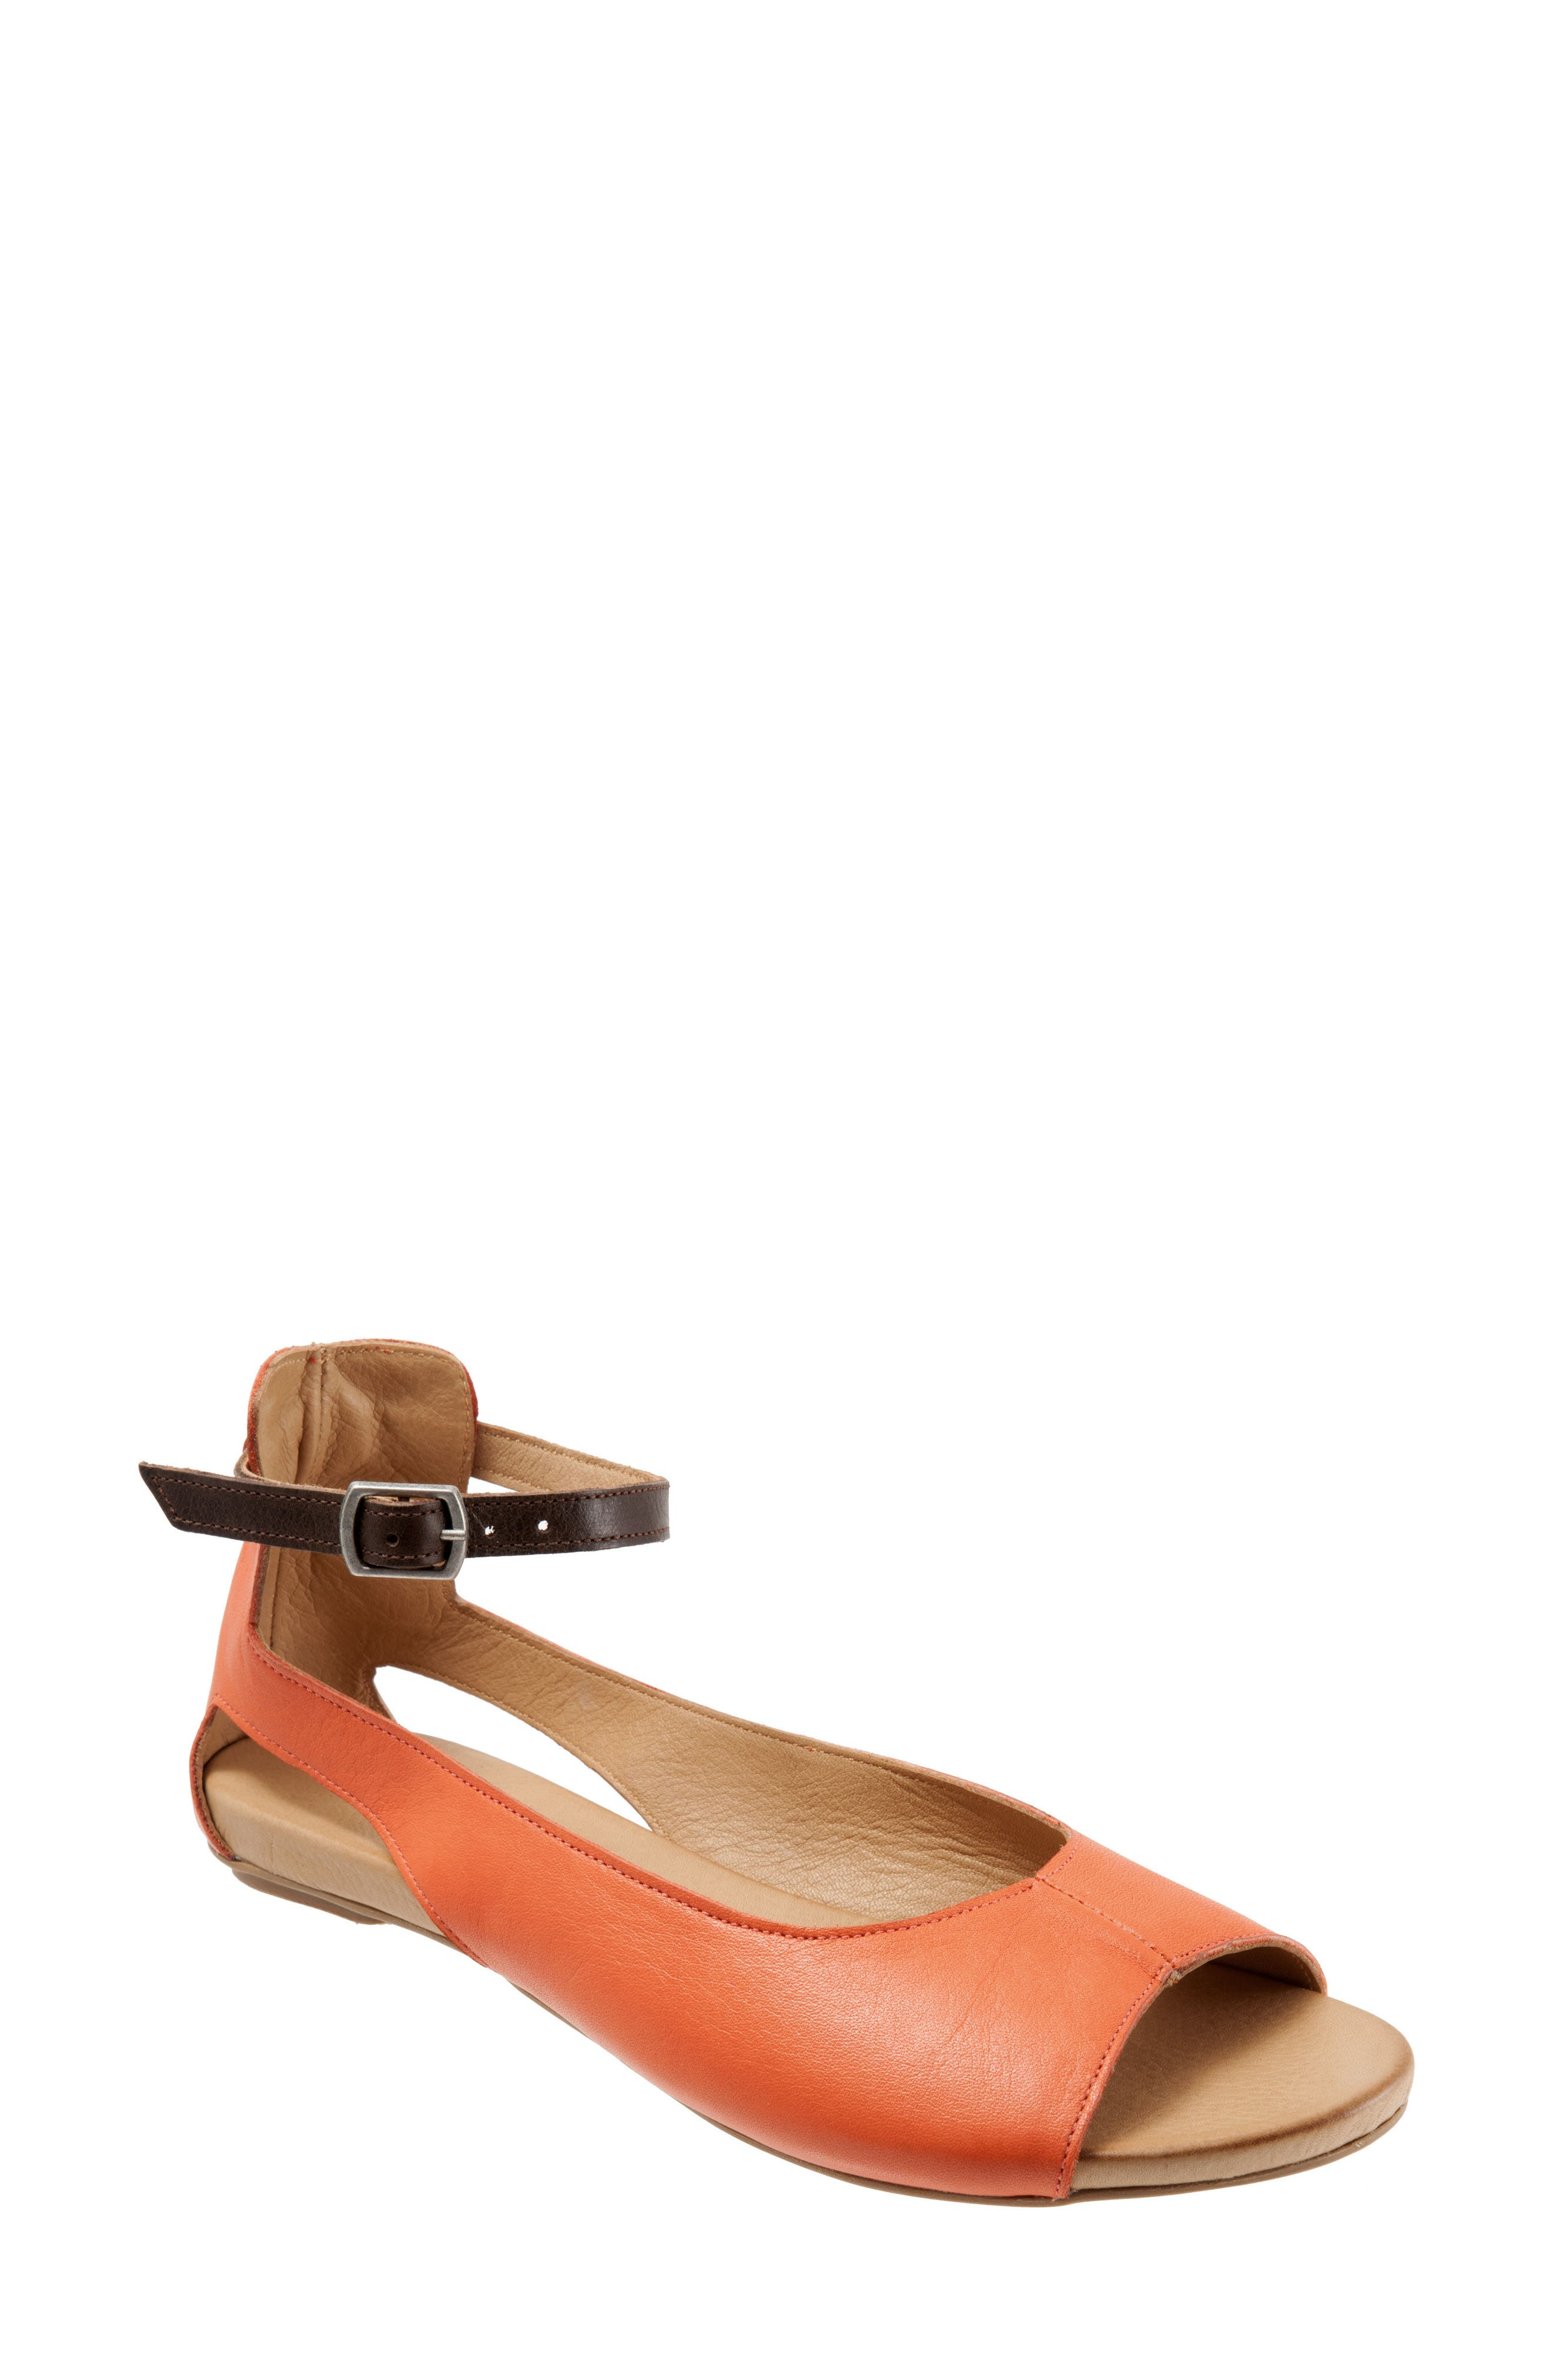 A slim ankle strap secures an elegant and contemporary sandal crafted from smooth and supple hand-worked leather. Style Name: Bueno Donna Ankle Strap Sandal (Women). Style Number: 5569172. Available in stores.